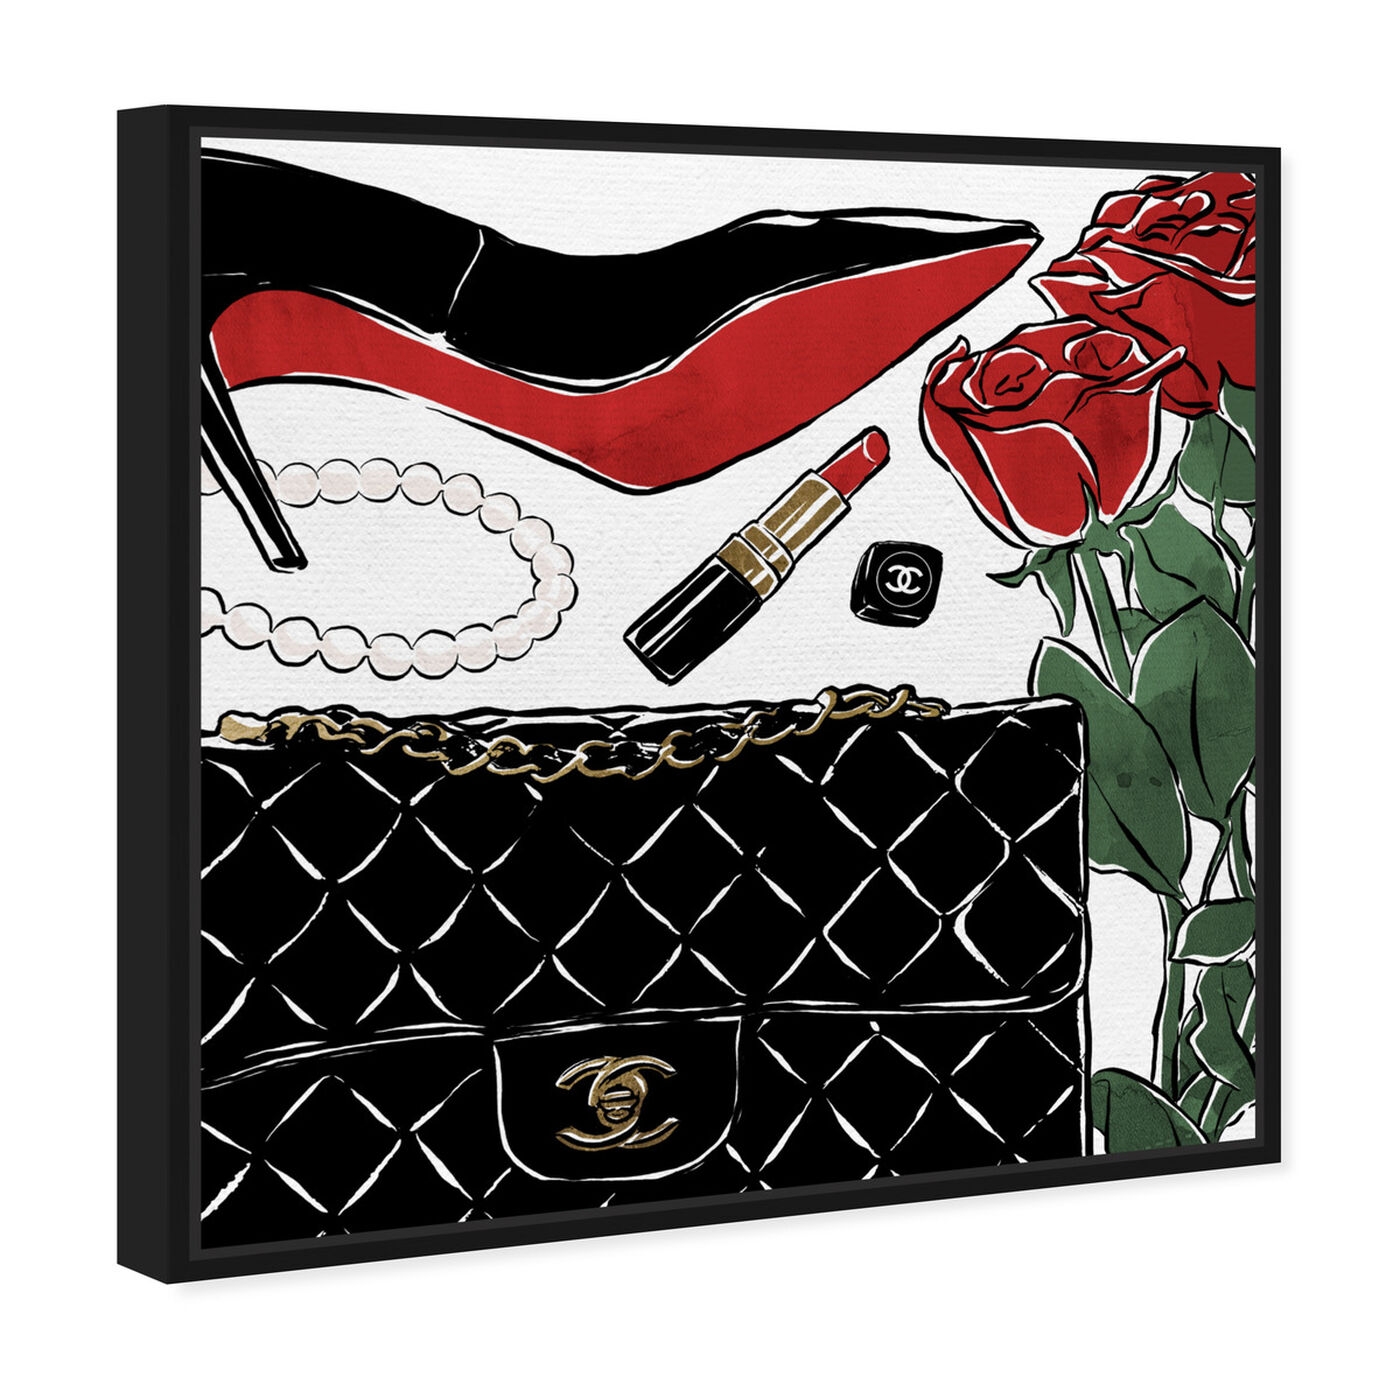 Angled view of Red Roses and Black Purses featuring fashion and glam and shoes art.